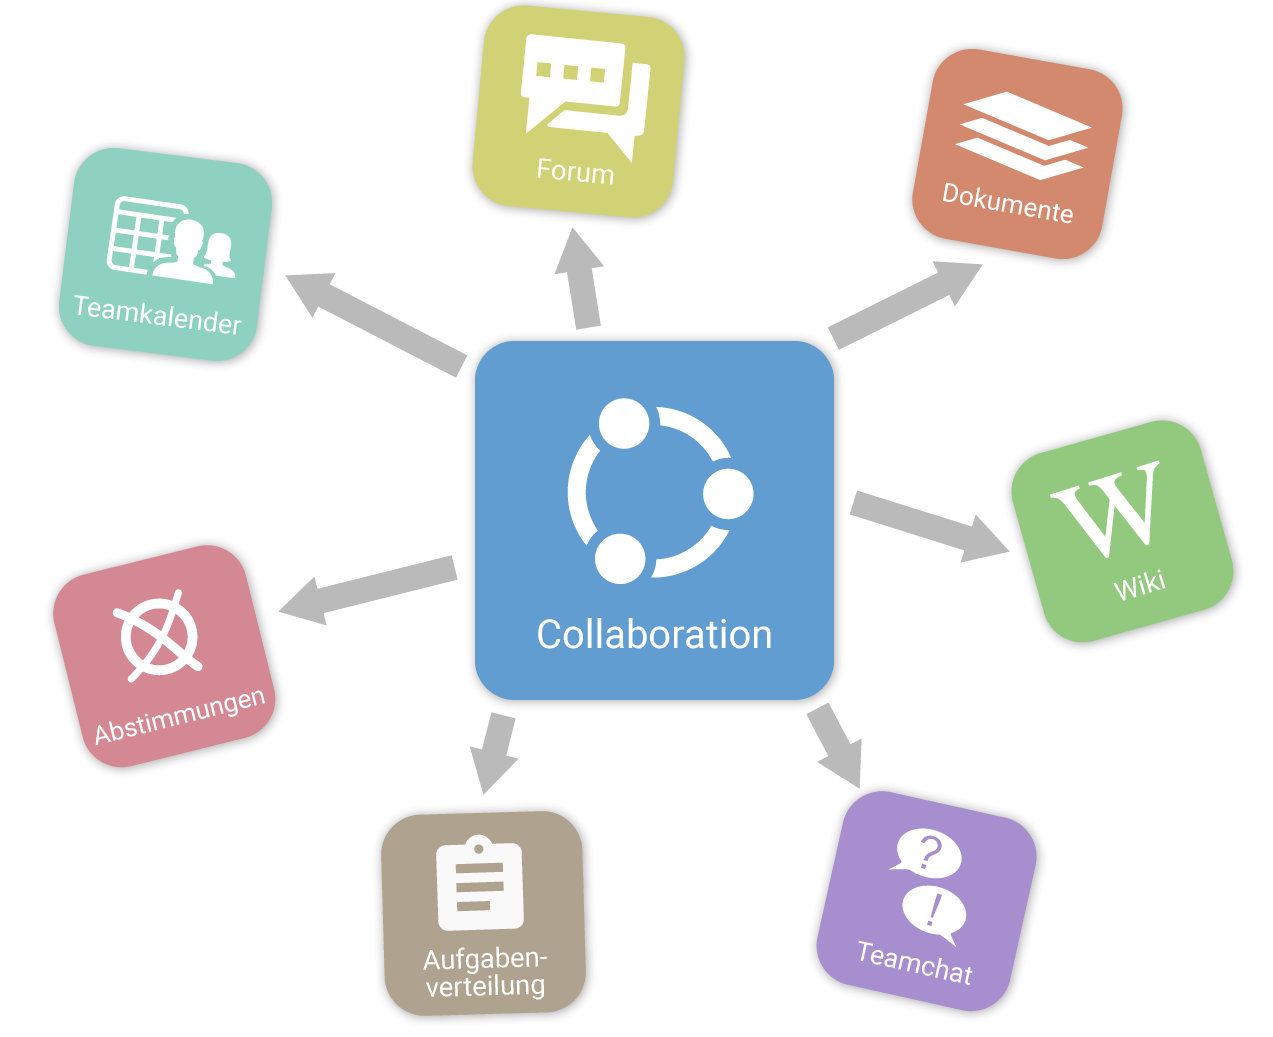 Collaboration in projectfacts